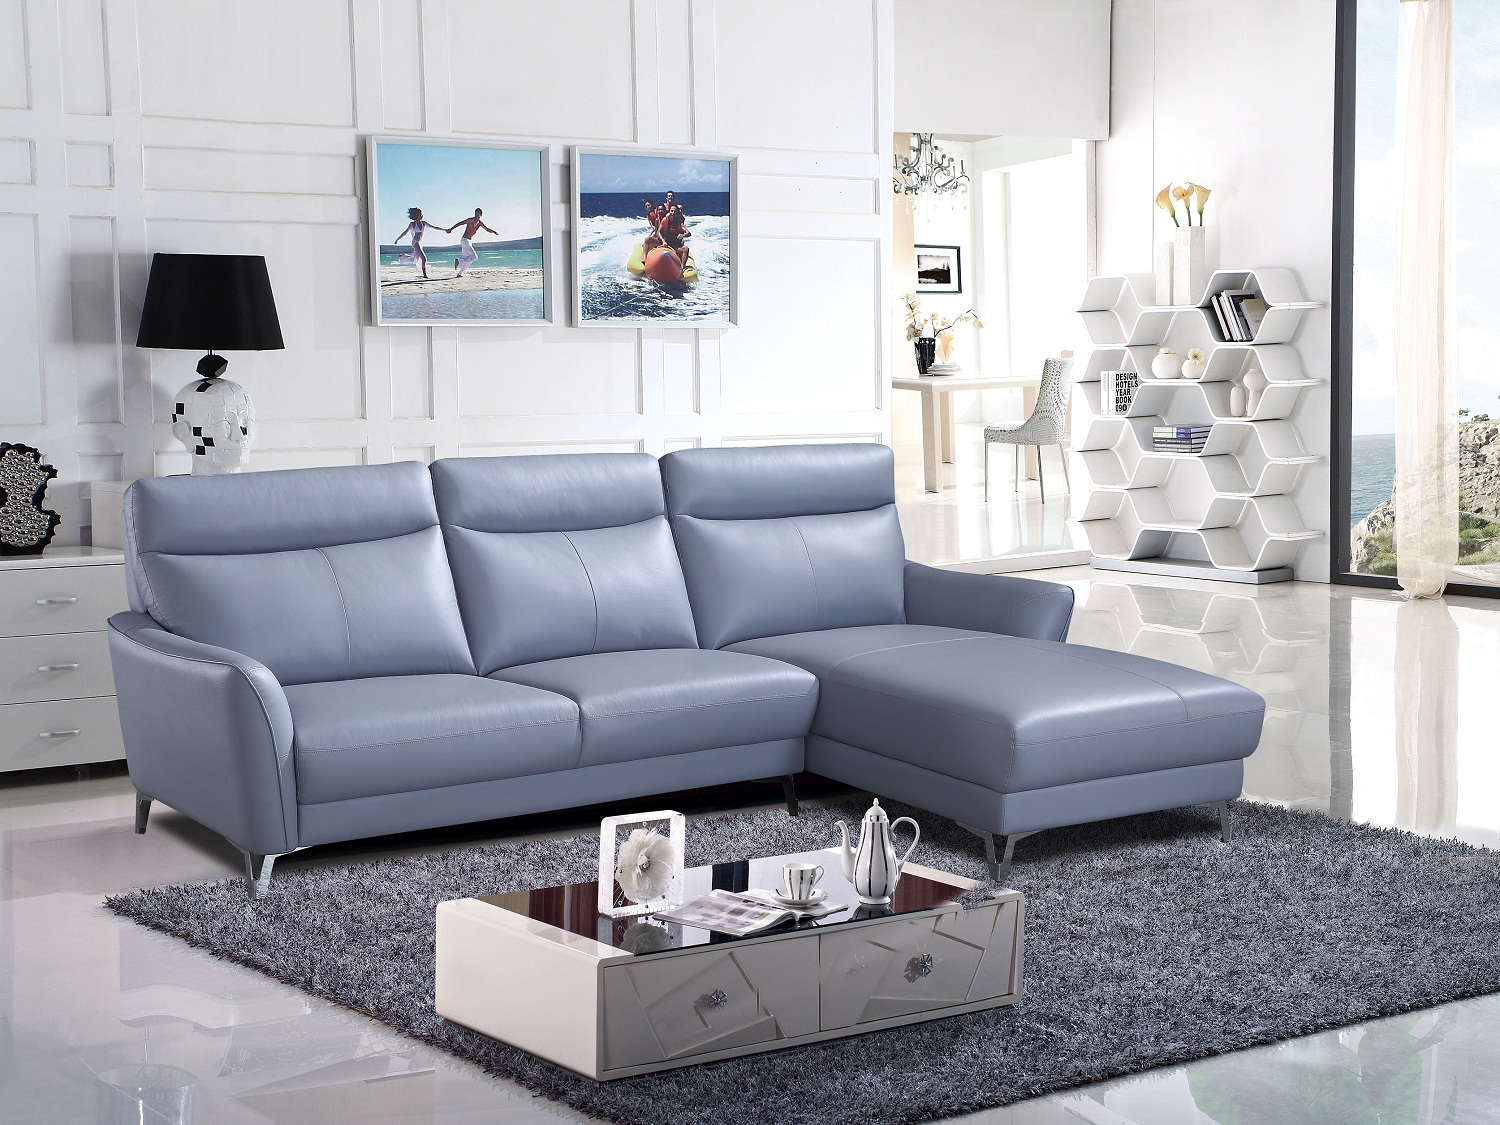 Cocoa Sectional sofa, Cocoa Sectional sofa, Sectionals by Midha Furniture to Brampton, Mississauga, Etobicoke, Toronto, Scraborough, Caledon, Oakville, Markham, Ajax, Pickering, Oshawa, Richmondhill, Kitchener, Hamilton and GTA area